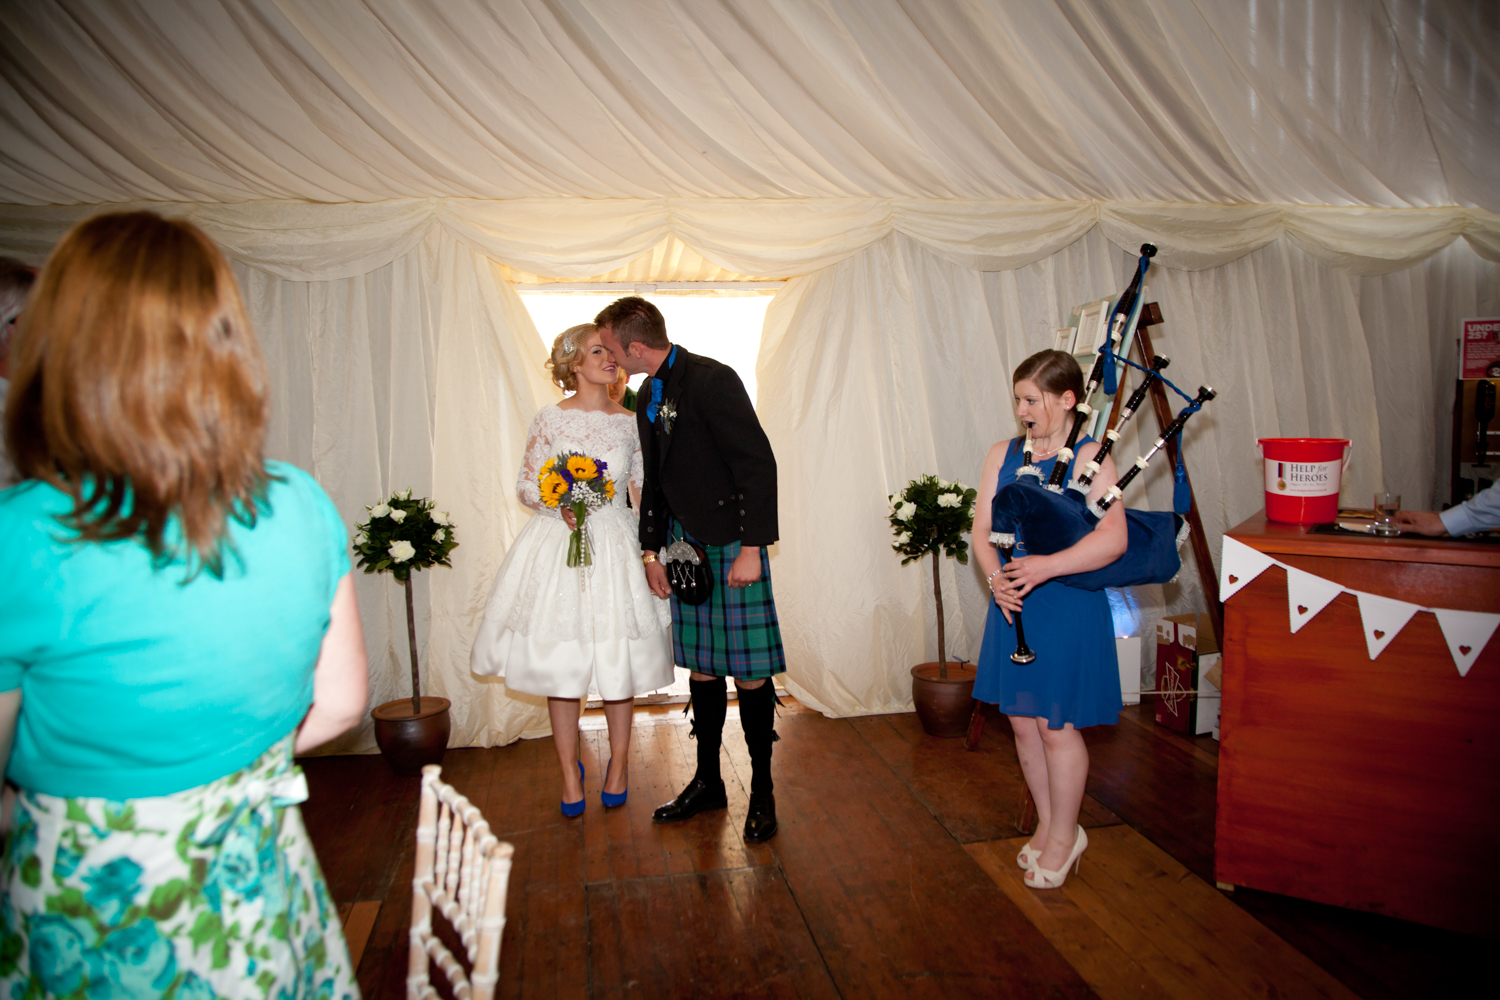 PICTORIAL_BERWICK_WEDDING_ALICE_WONDERLAND_MAD_HATTERS_FARM-9515.jpg